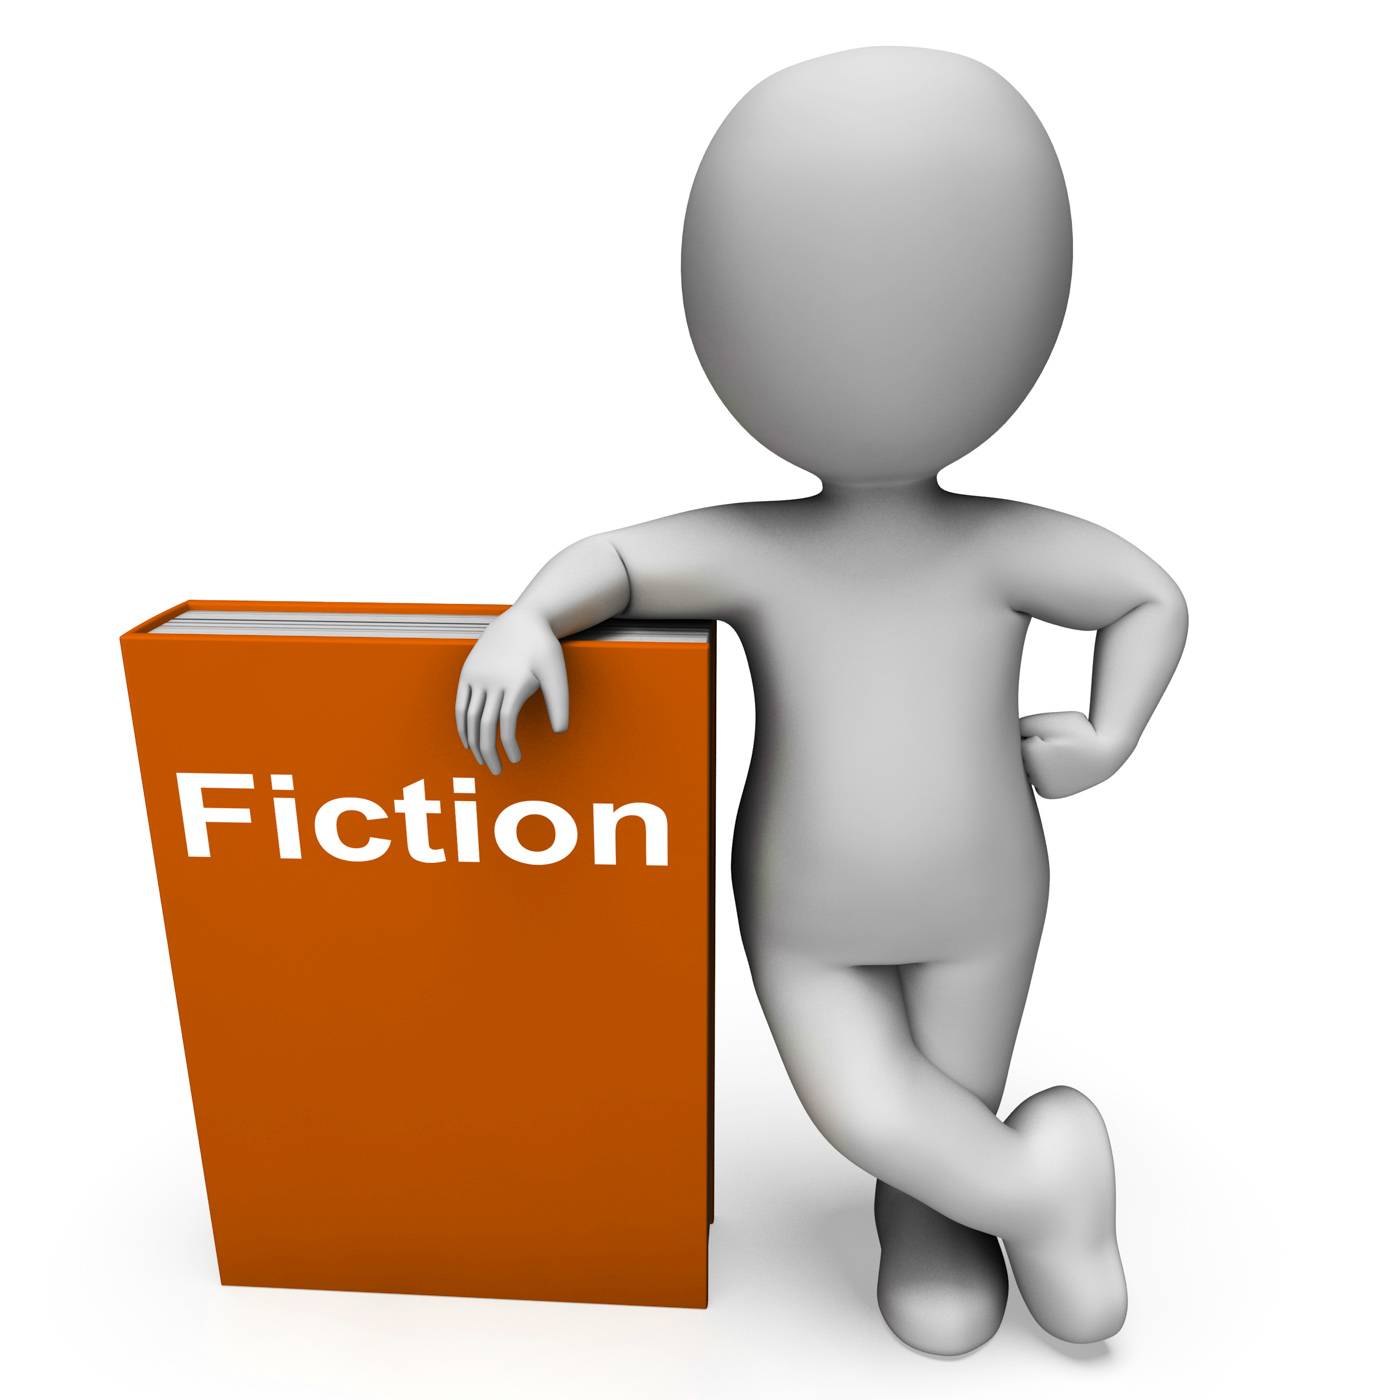 Fiction book and character shows books with imaginary stories photo